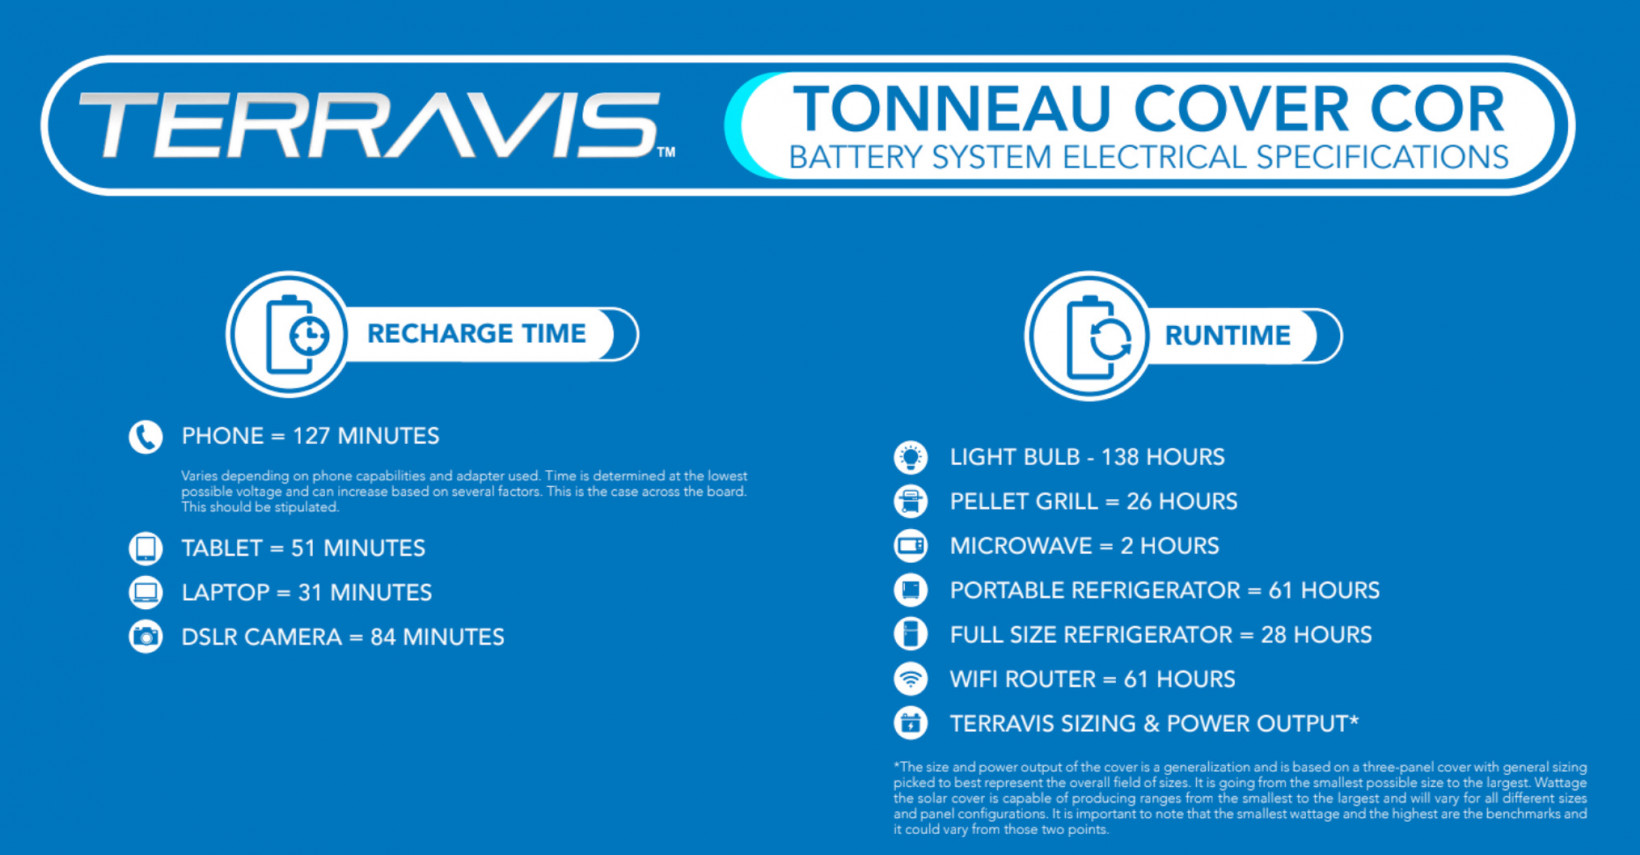 the charging times of the Terravis charging system